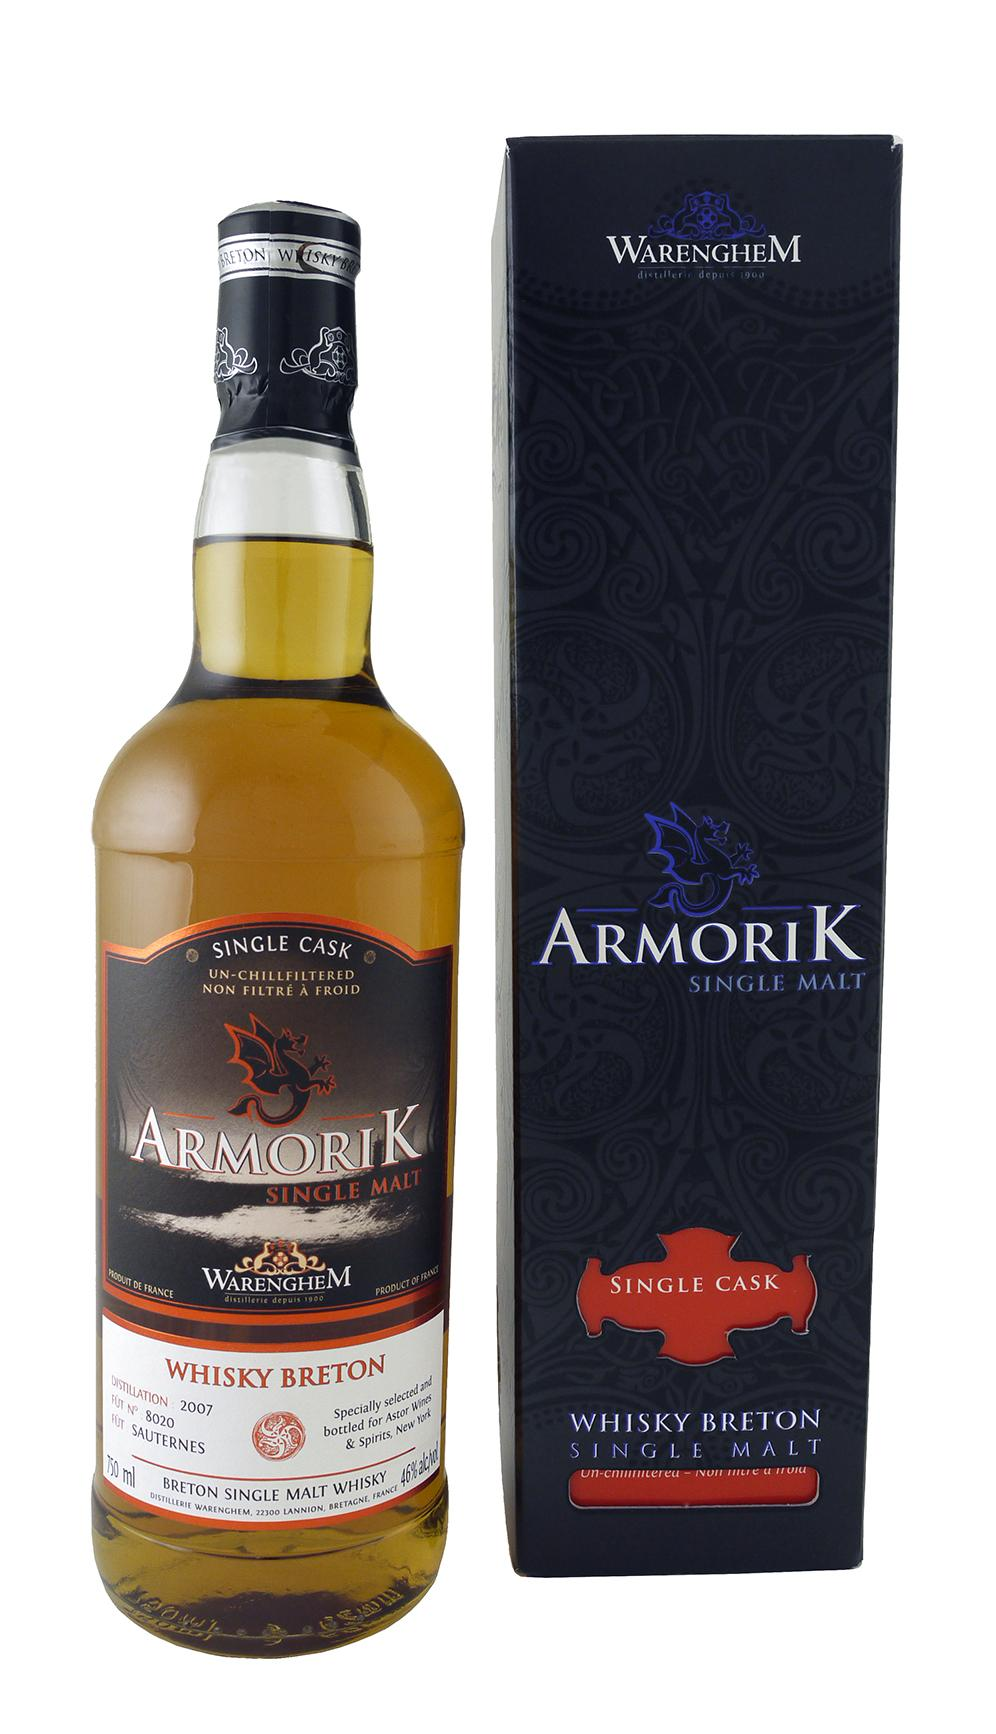 Armorik Exclusive Cask Single Malt